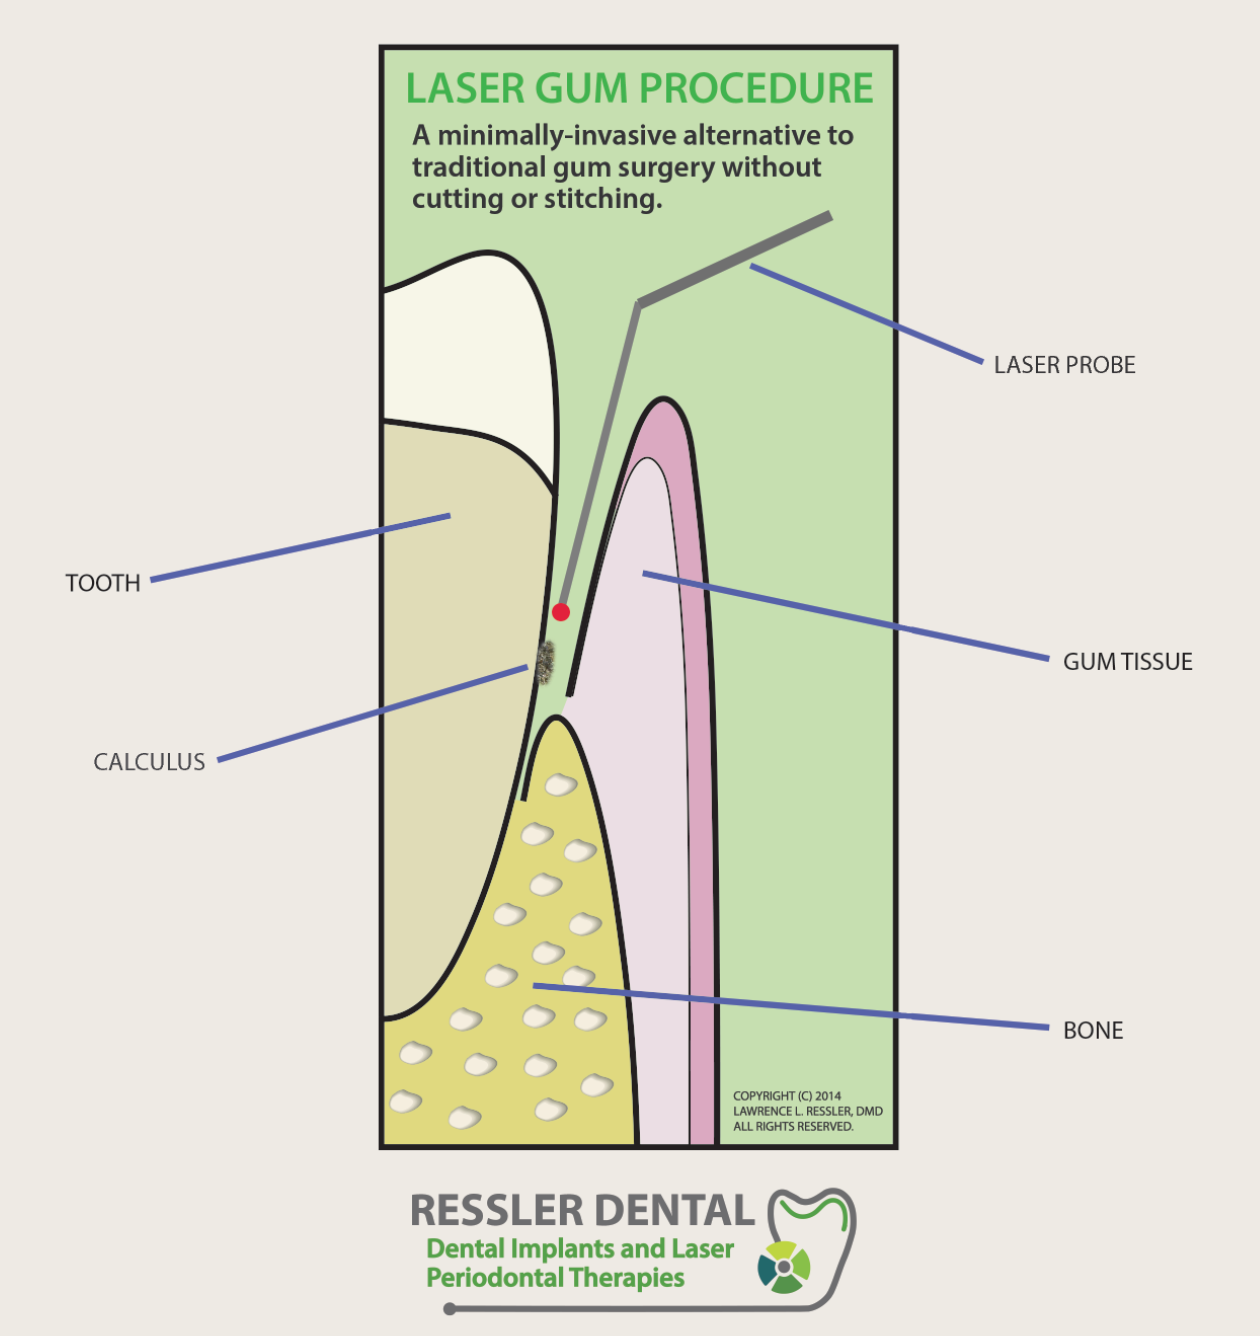 LASER-GUM-TREATMENT-IN-BOCA-RATON